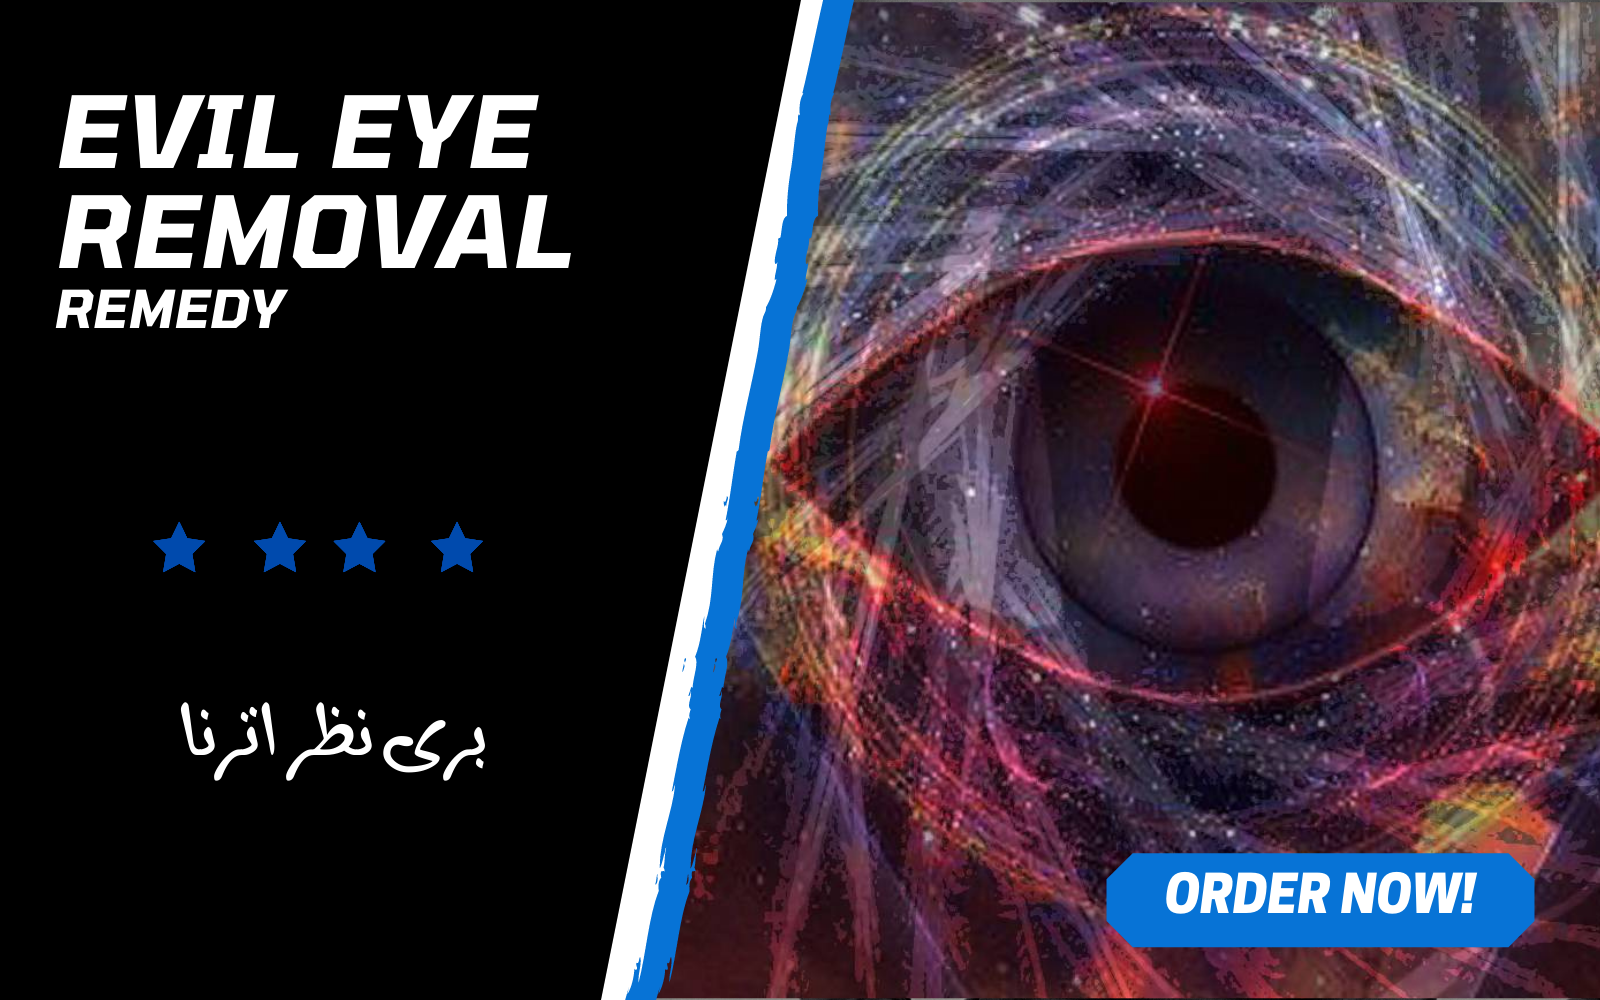 Will Detect and Remove the Evil eye from You